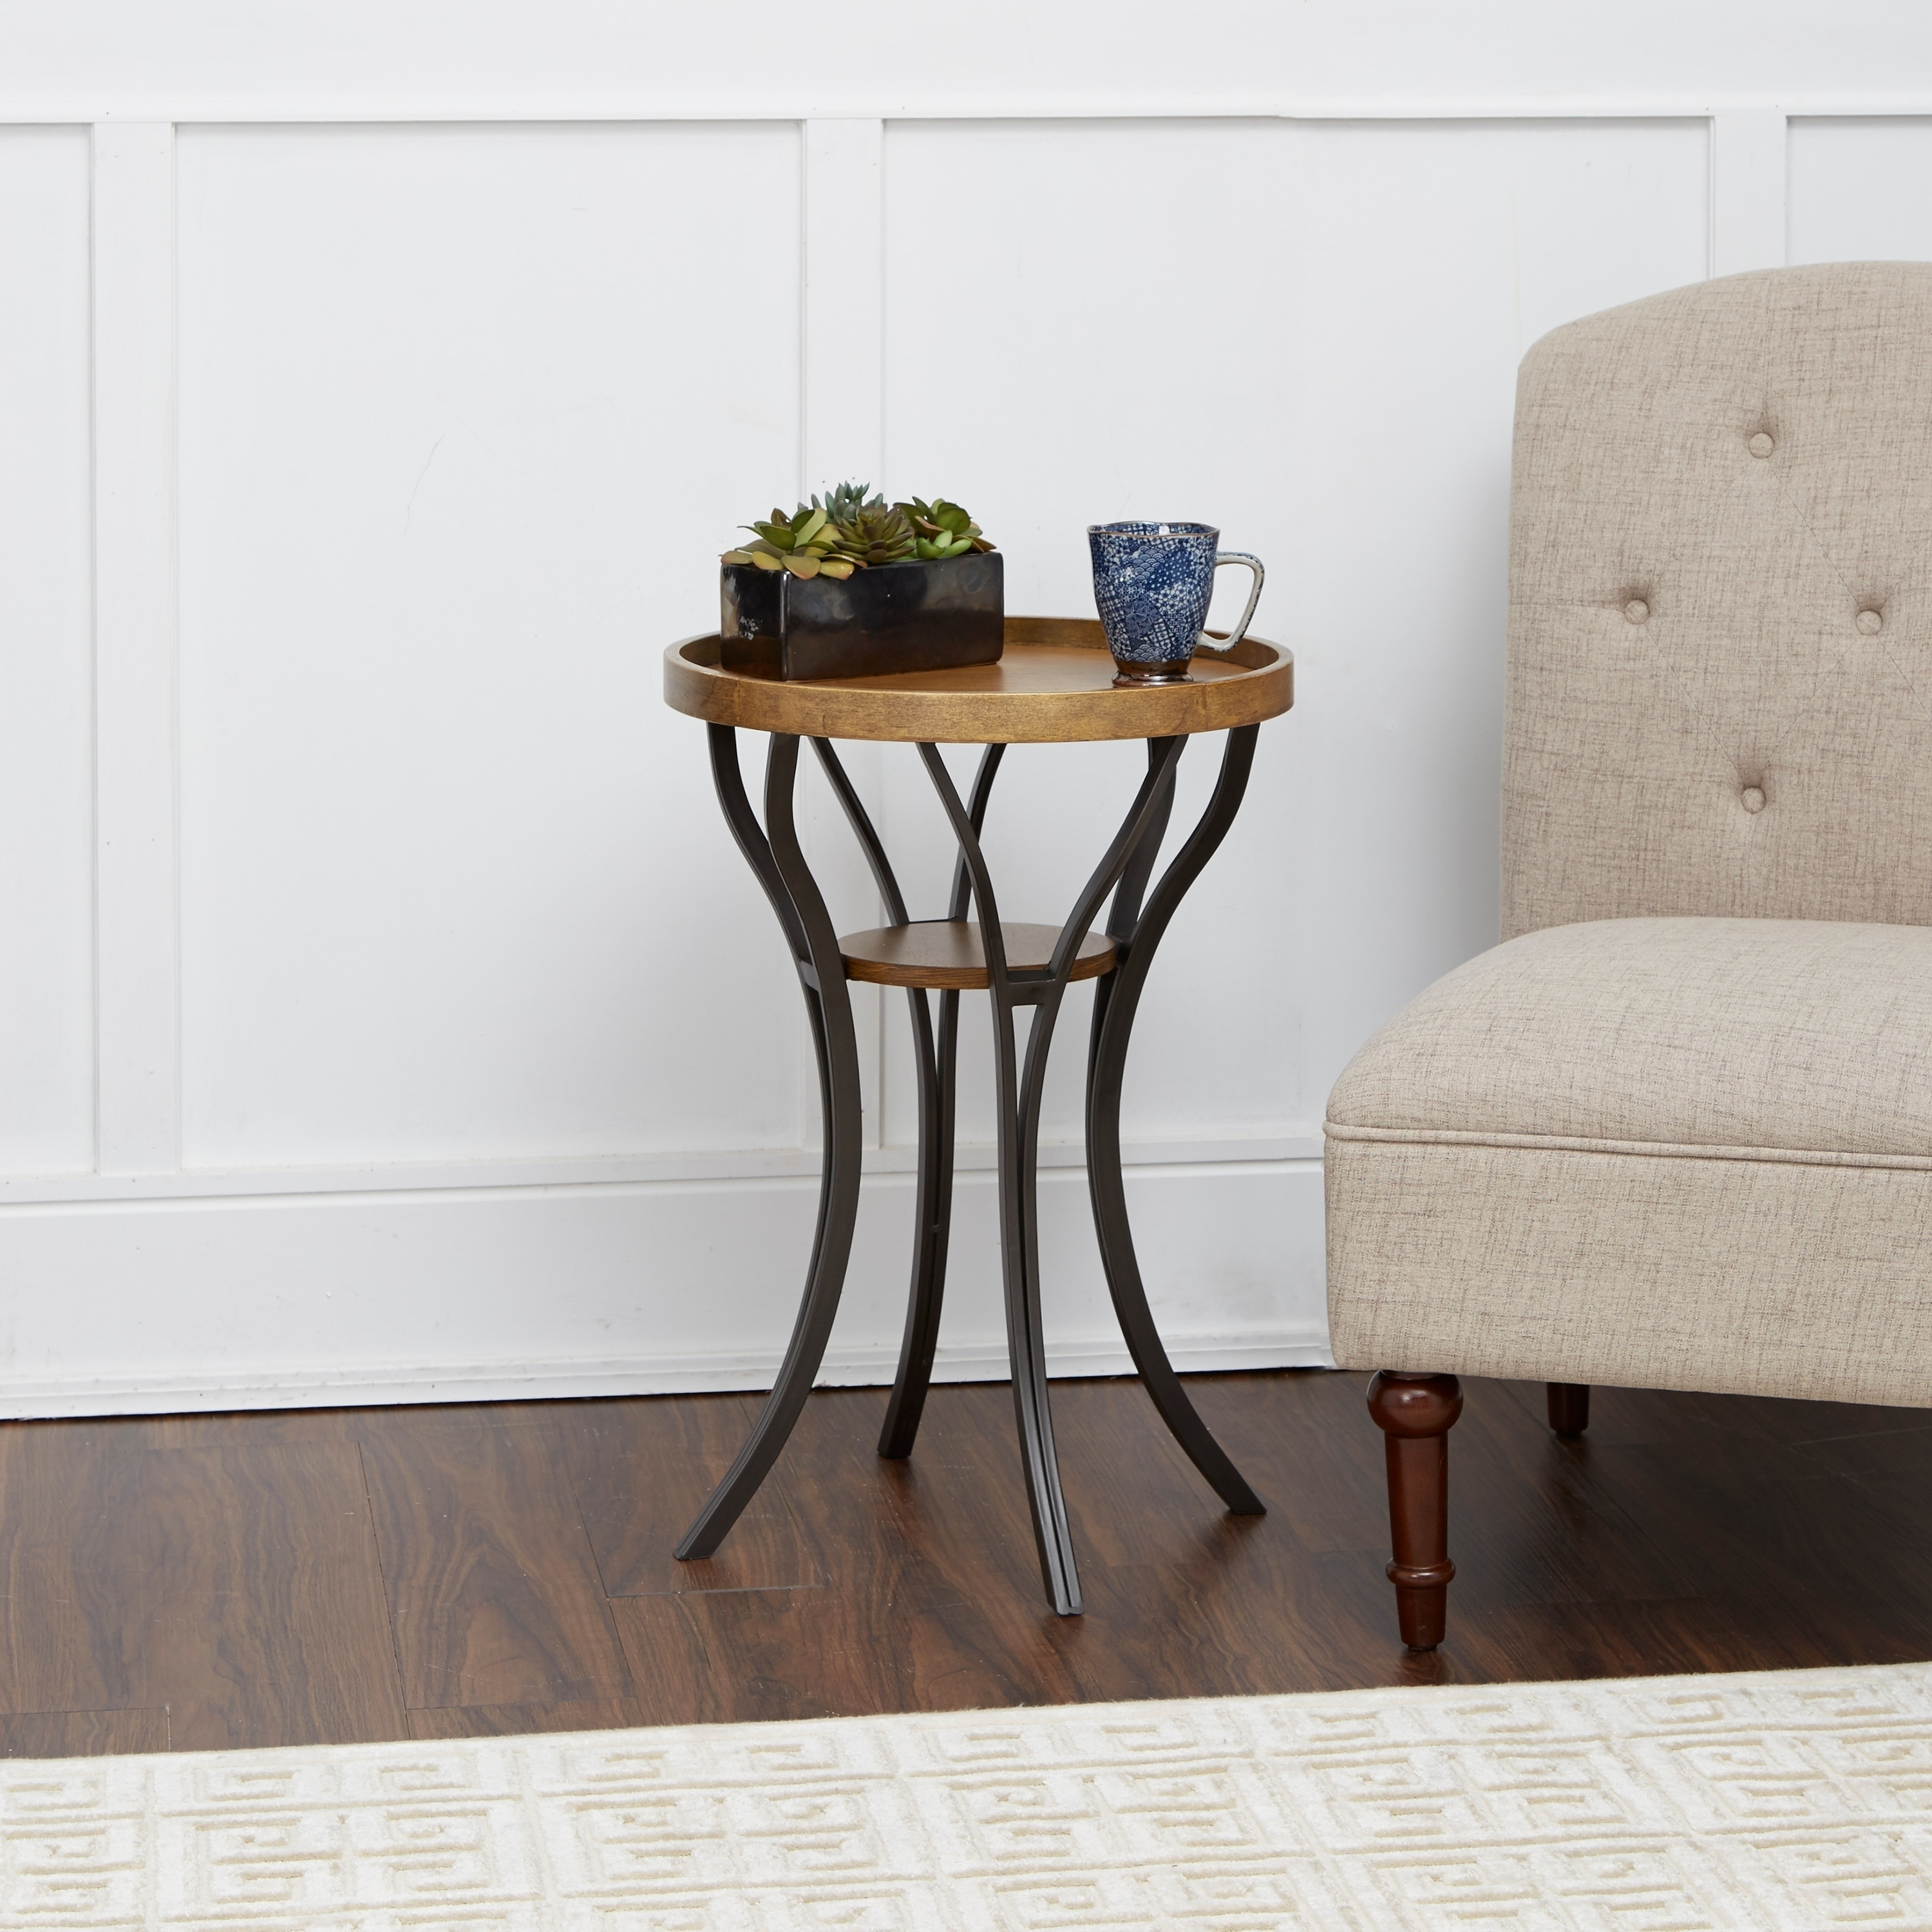 Leo Brown Black Wood Metal Accent Table